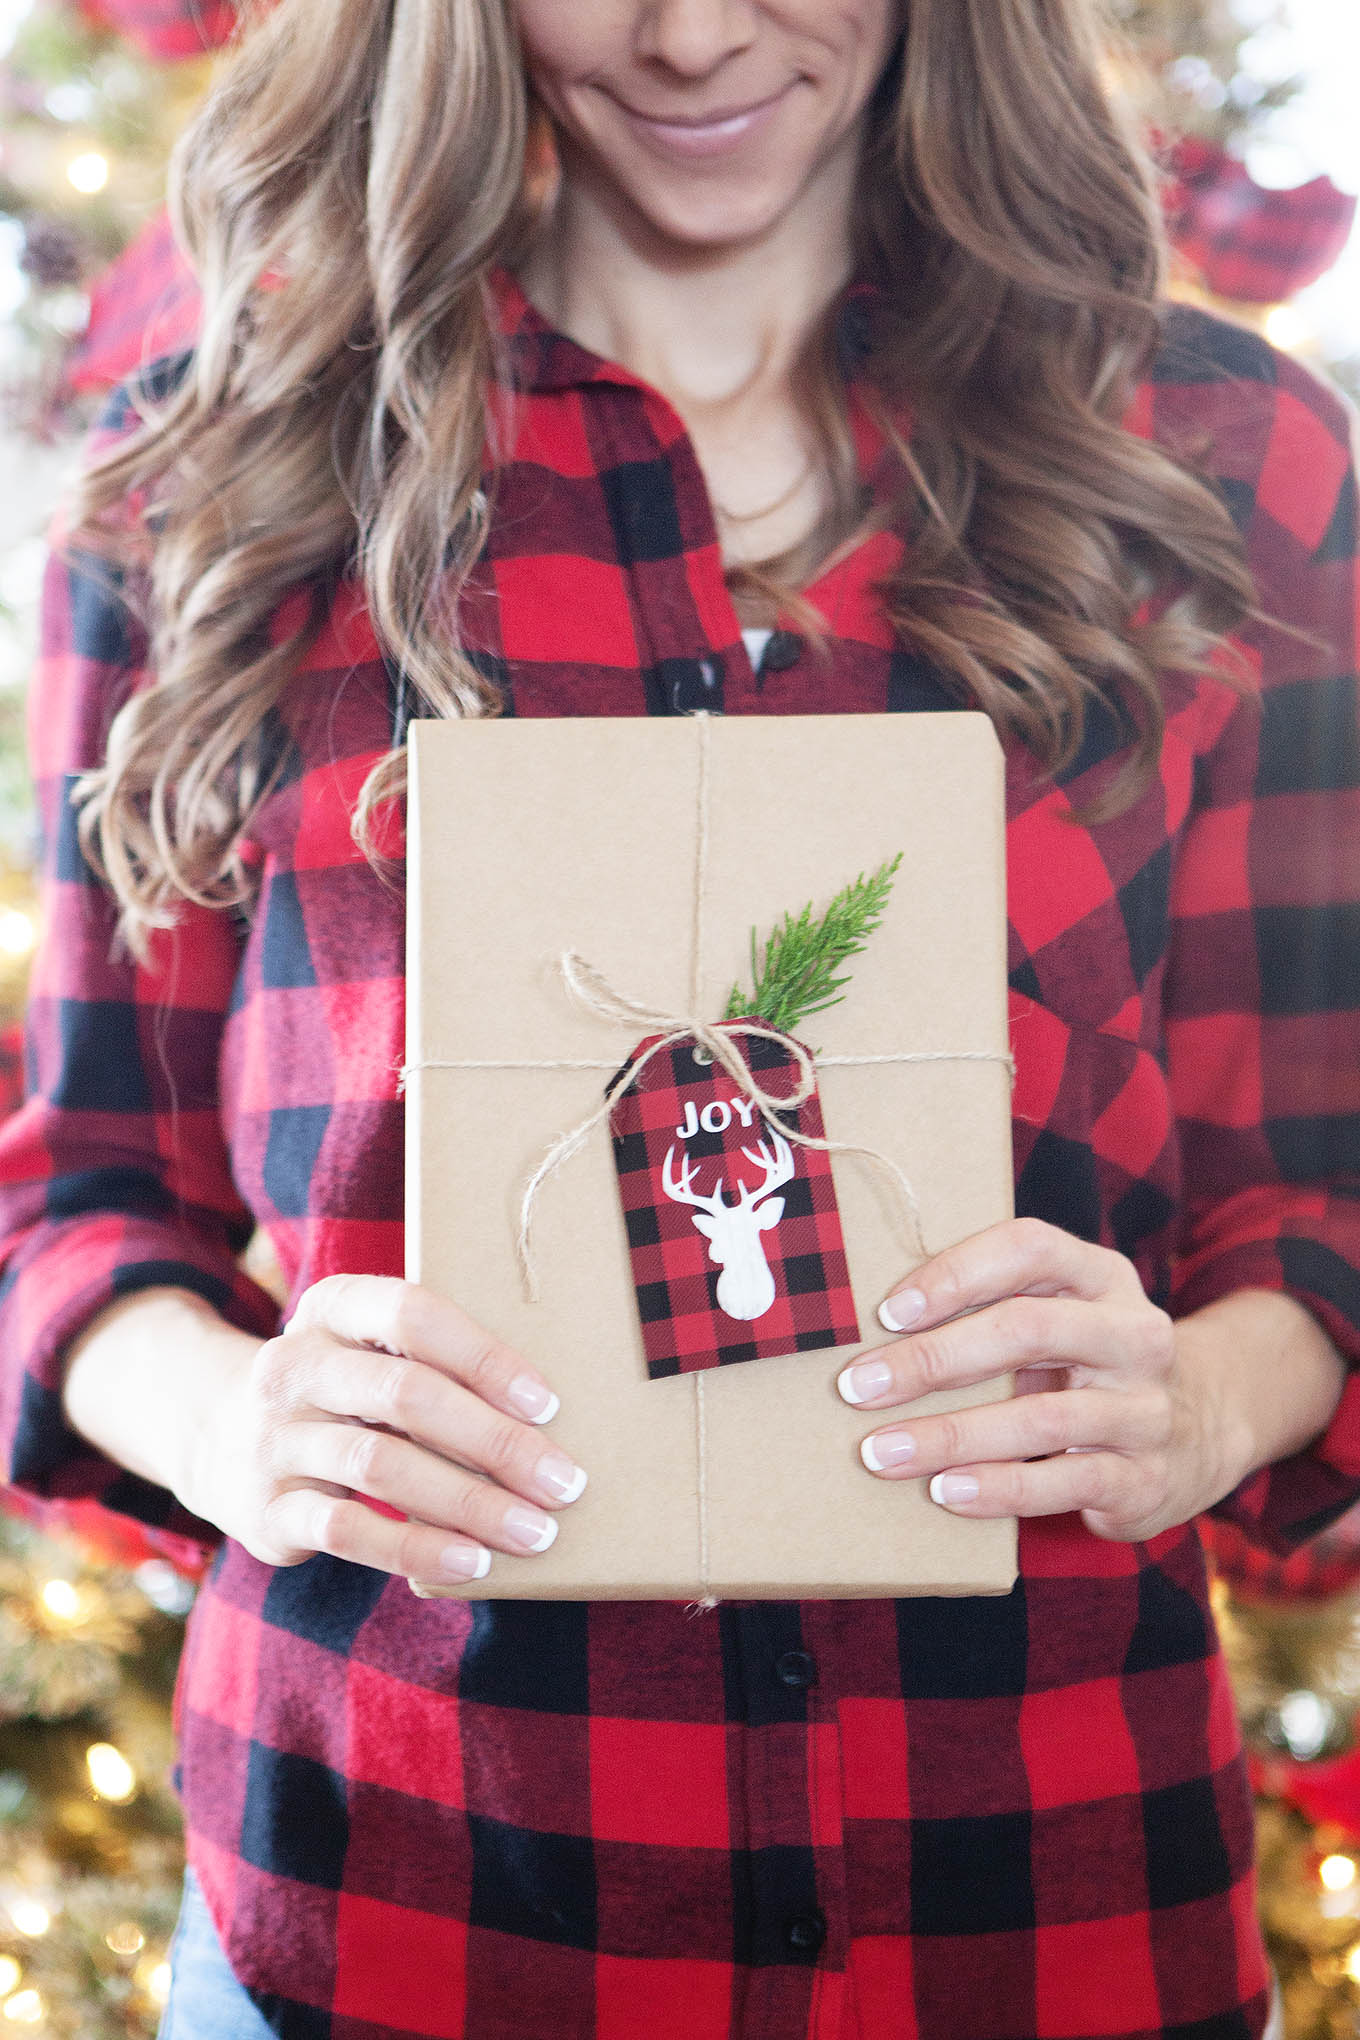 Add a little rustic, outdoorsy flair to your holiday gift wrapping with these free buffalo check plaid and chalkboard Christmas gift tag printables.